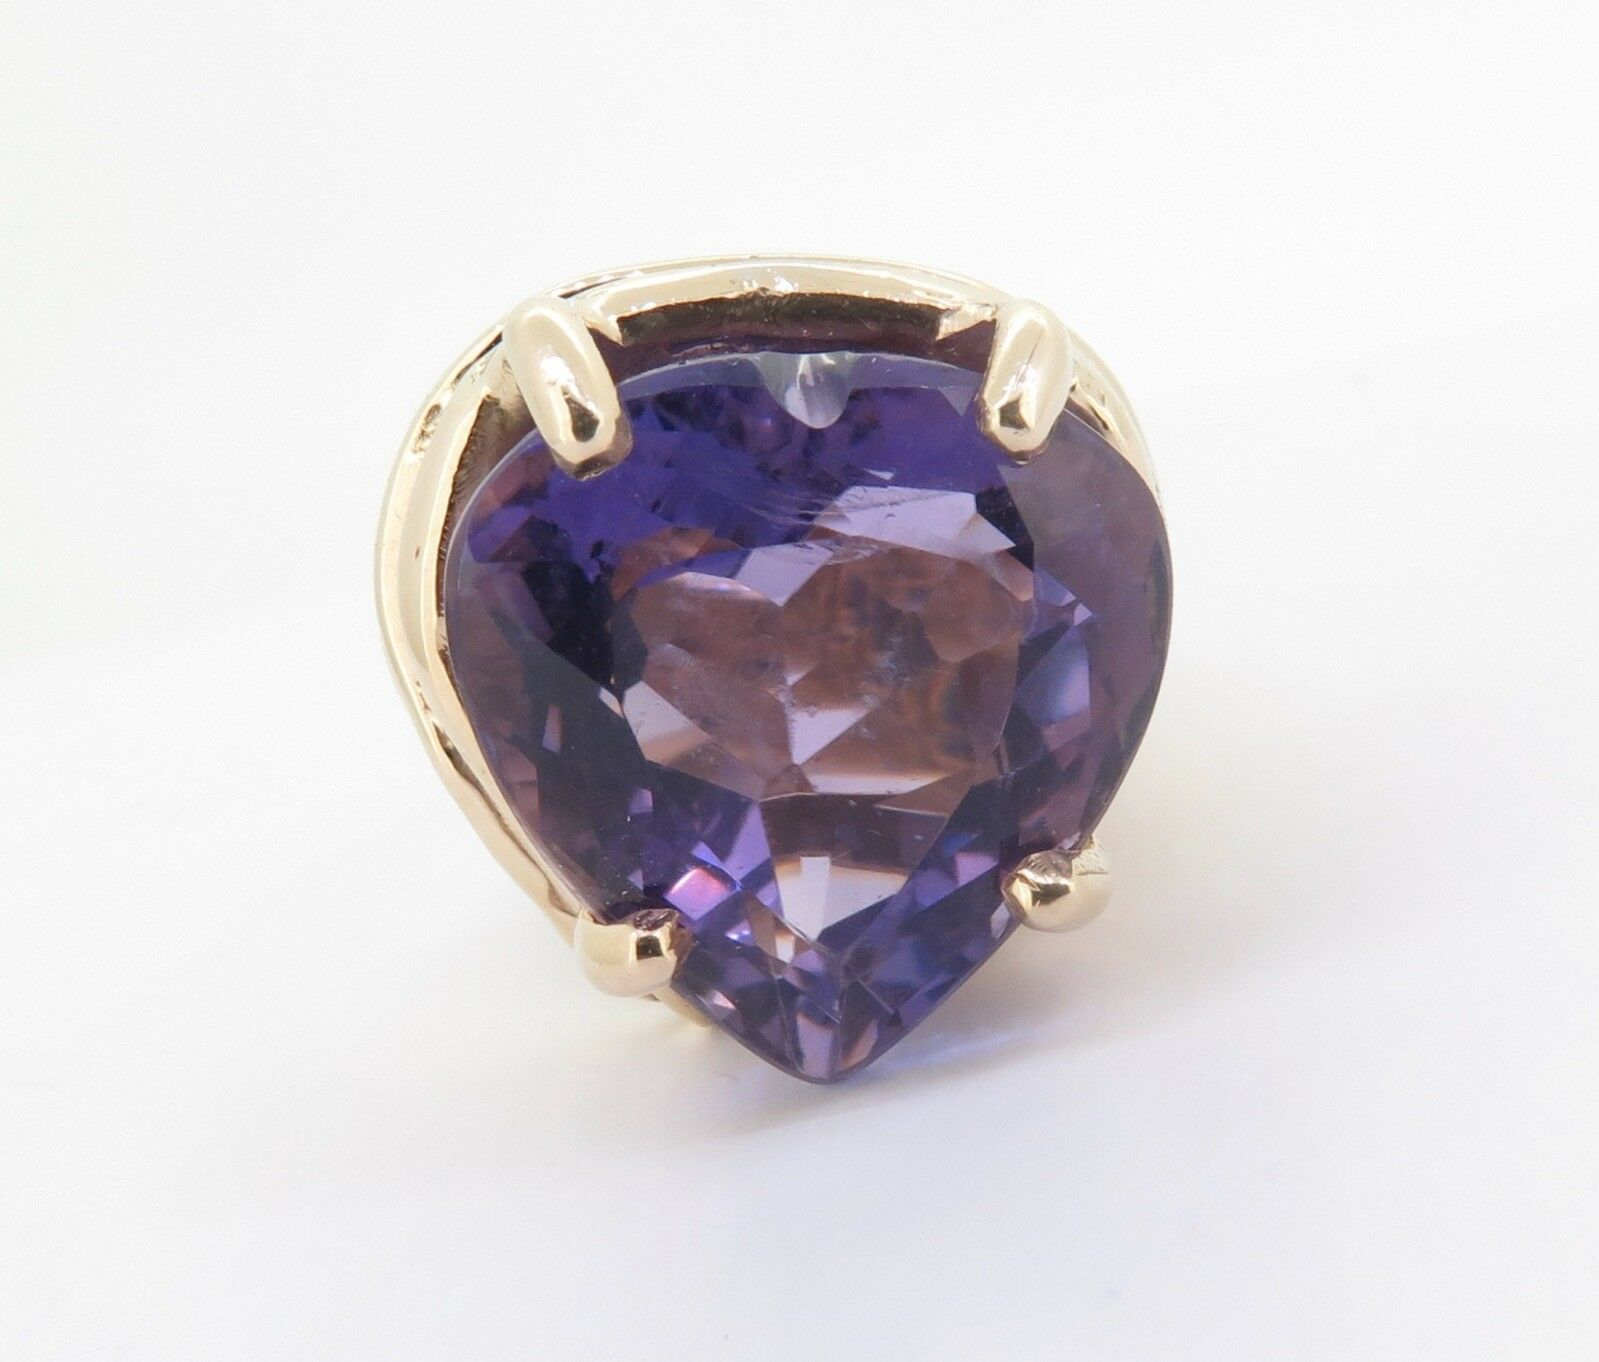 .A 14ct Yellow gold Large 22ct Heart Cut Amethyst Dress Ring Size Q Val  4340